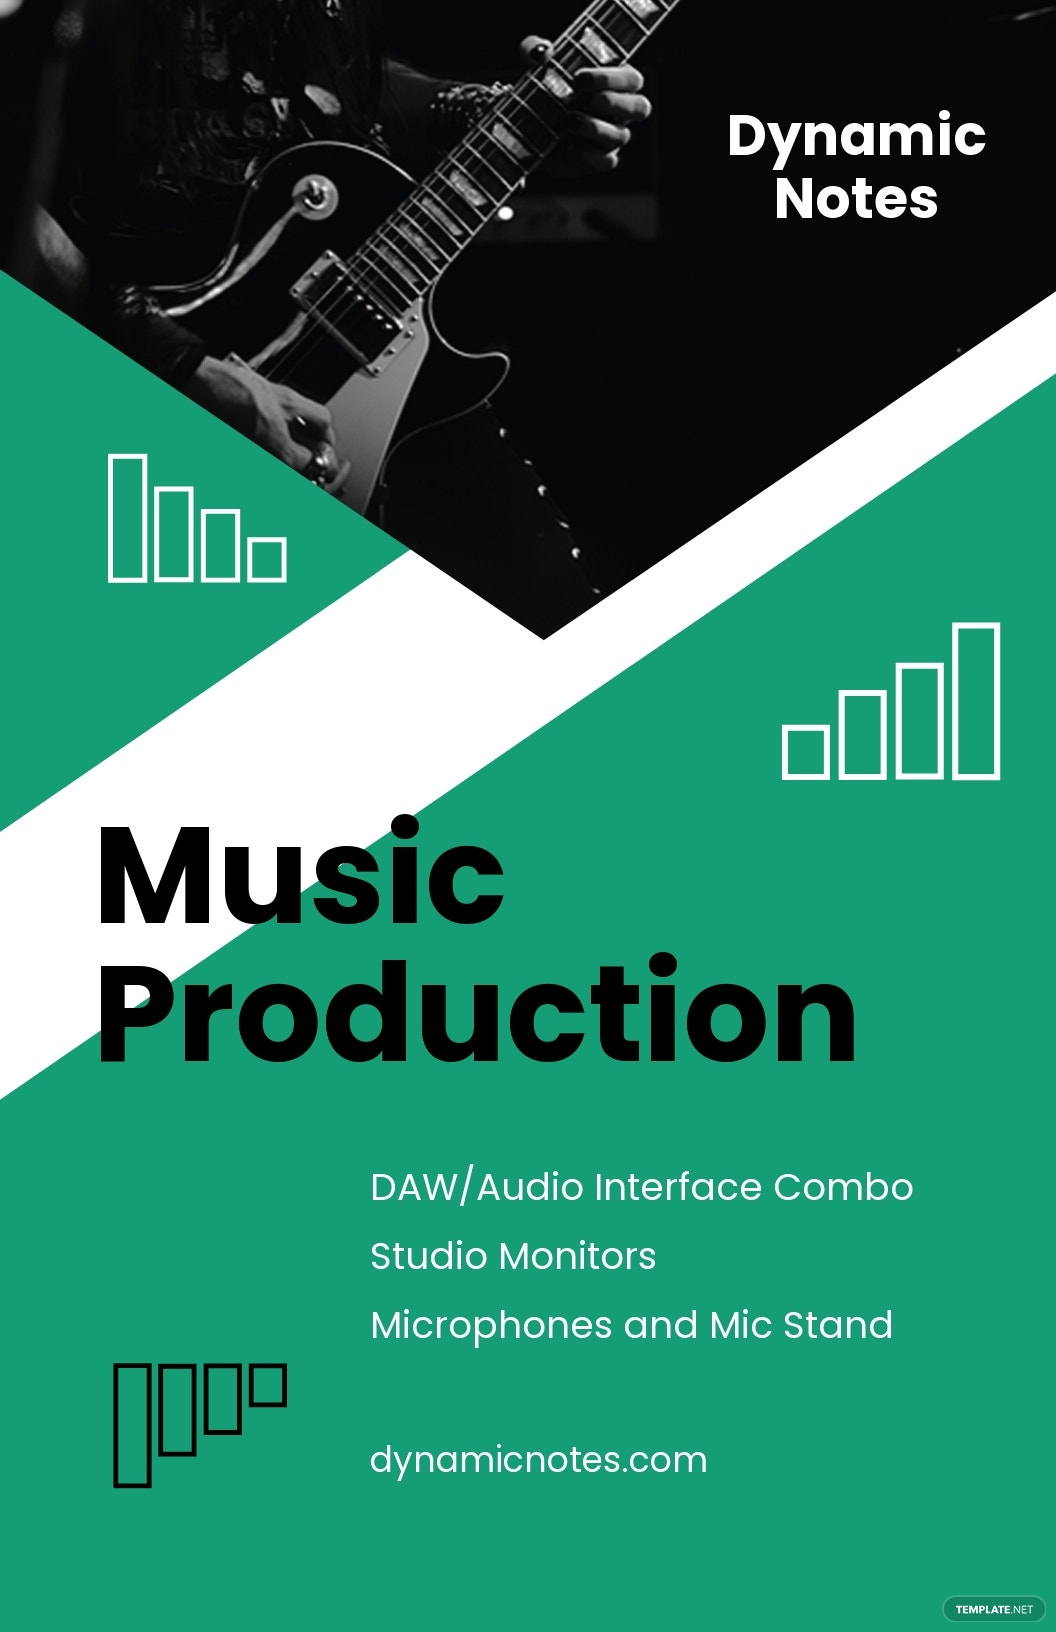 Music Production Poster Template